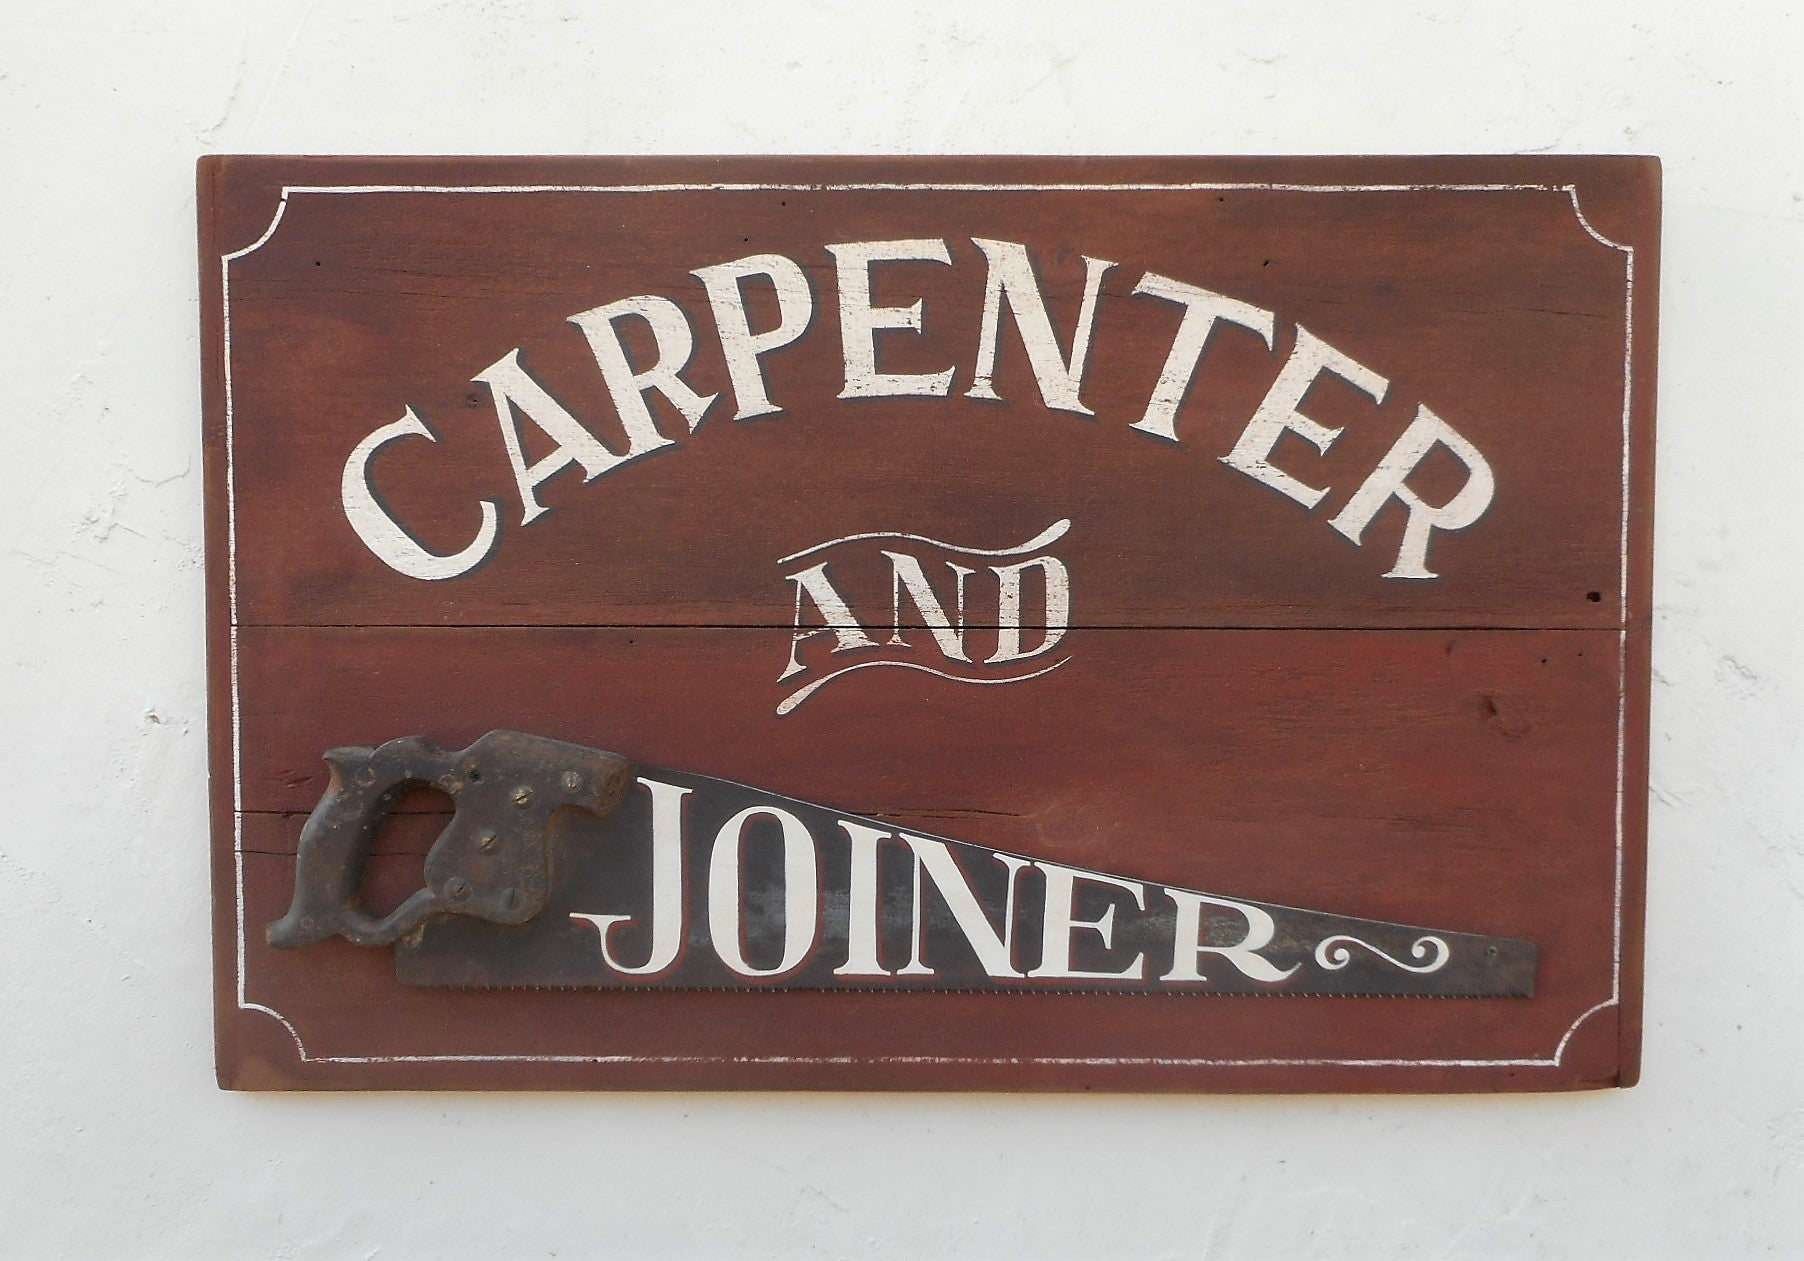 Carpenter and Joiner